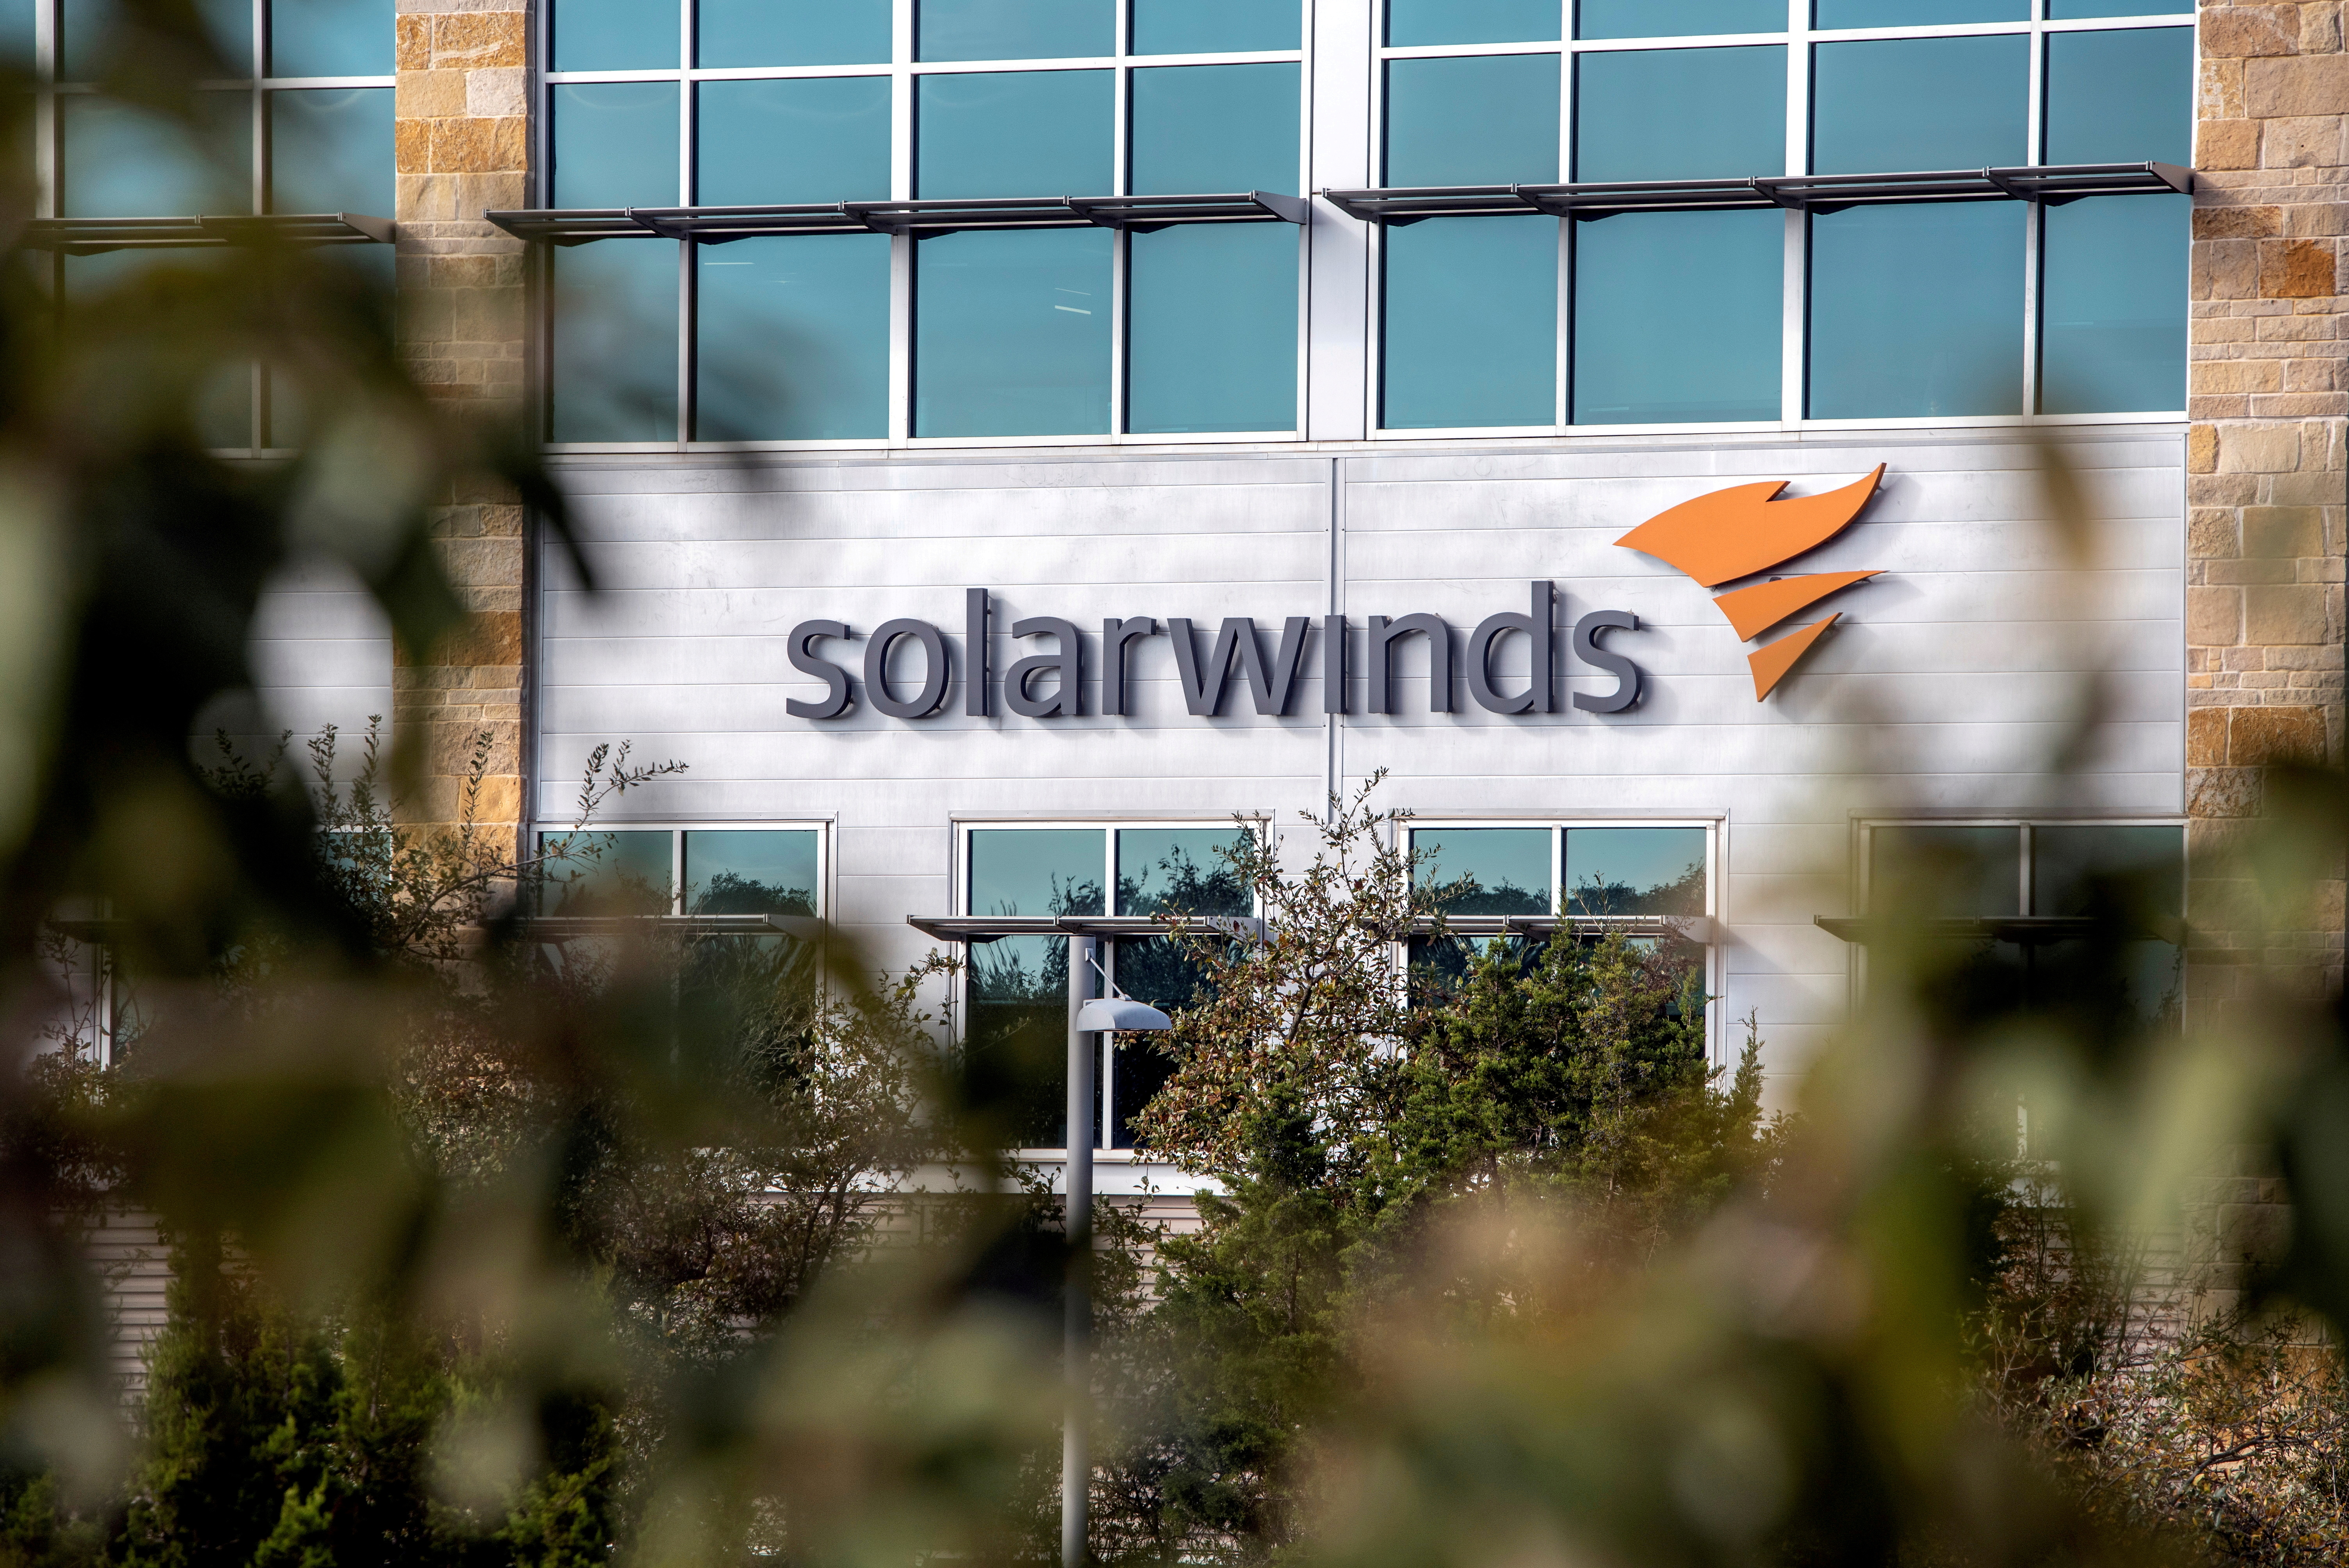 The SolarWinds logo is seen outside its headquarters in Austin, Texas, U.S., December 18, 2020. REUTERS/Sergio Flores/File Photo